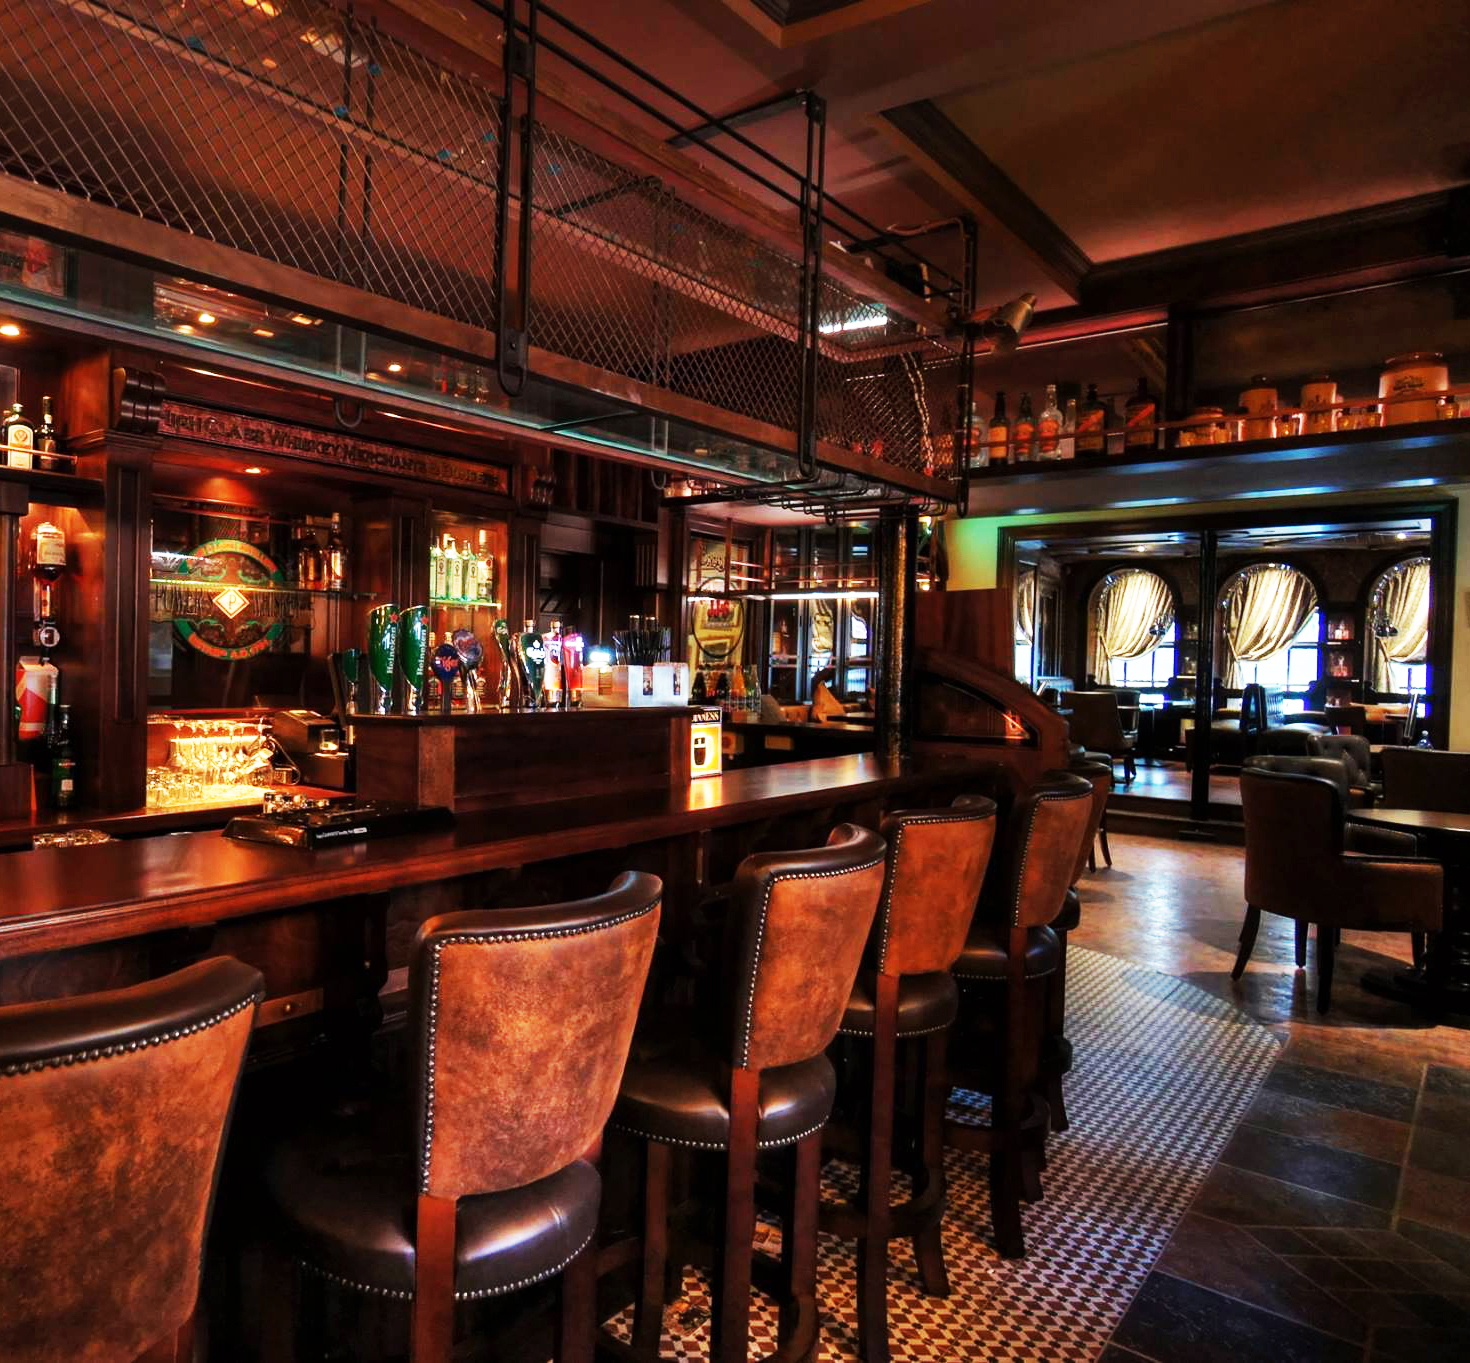 Irish Bars and Irish Pub fitouts worldwide